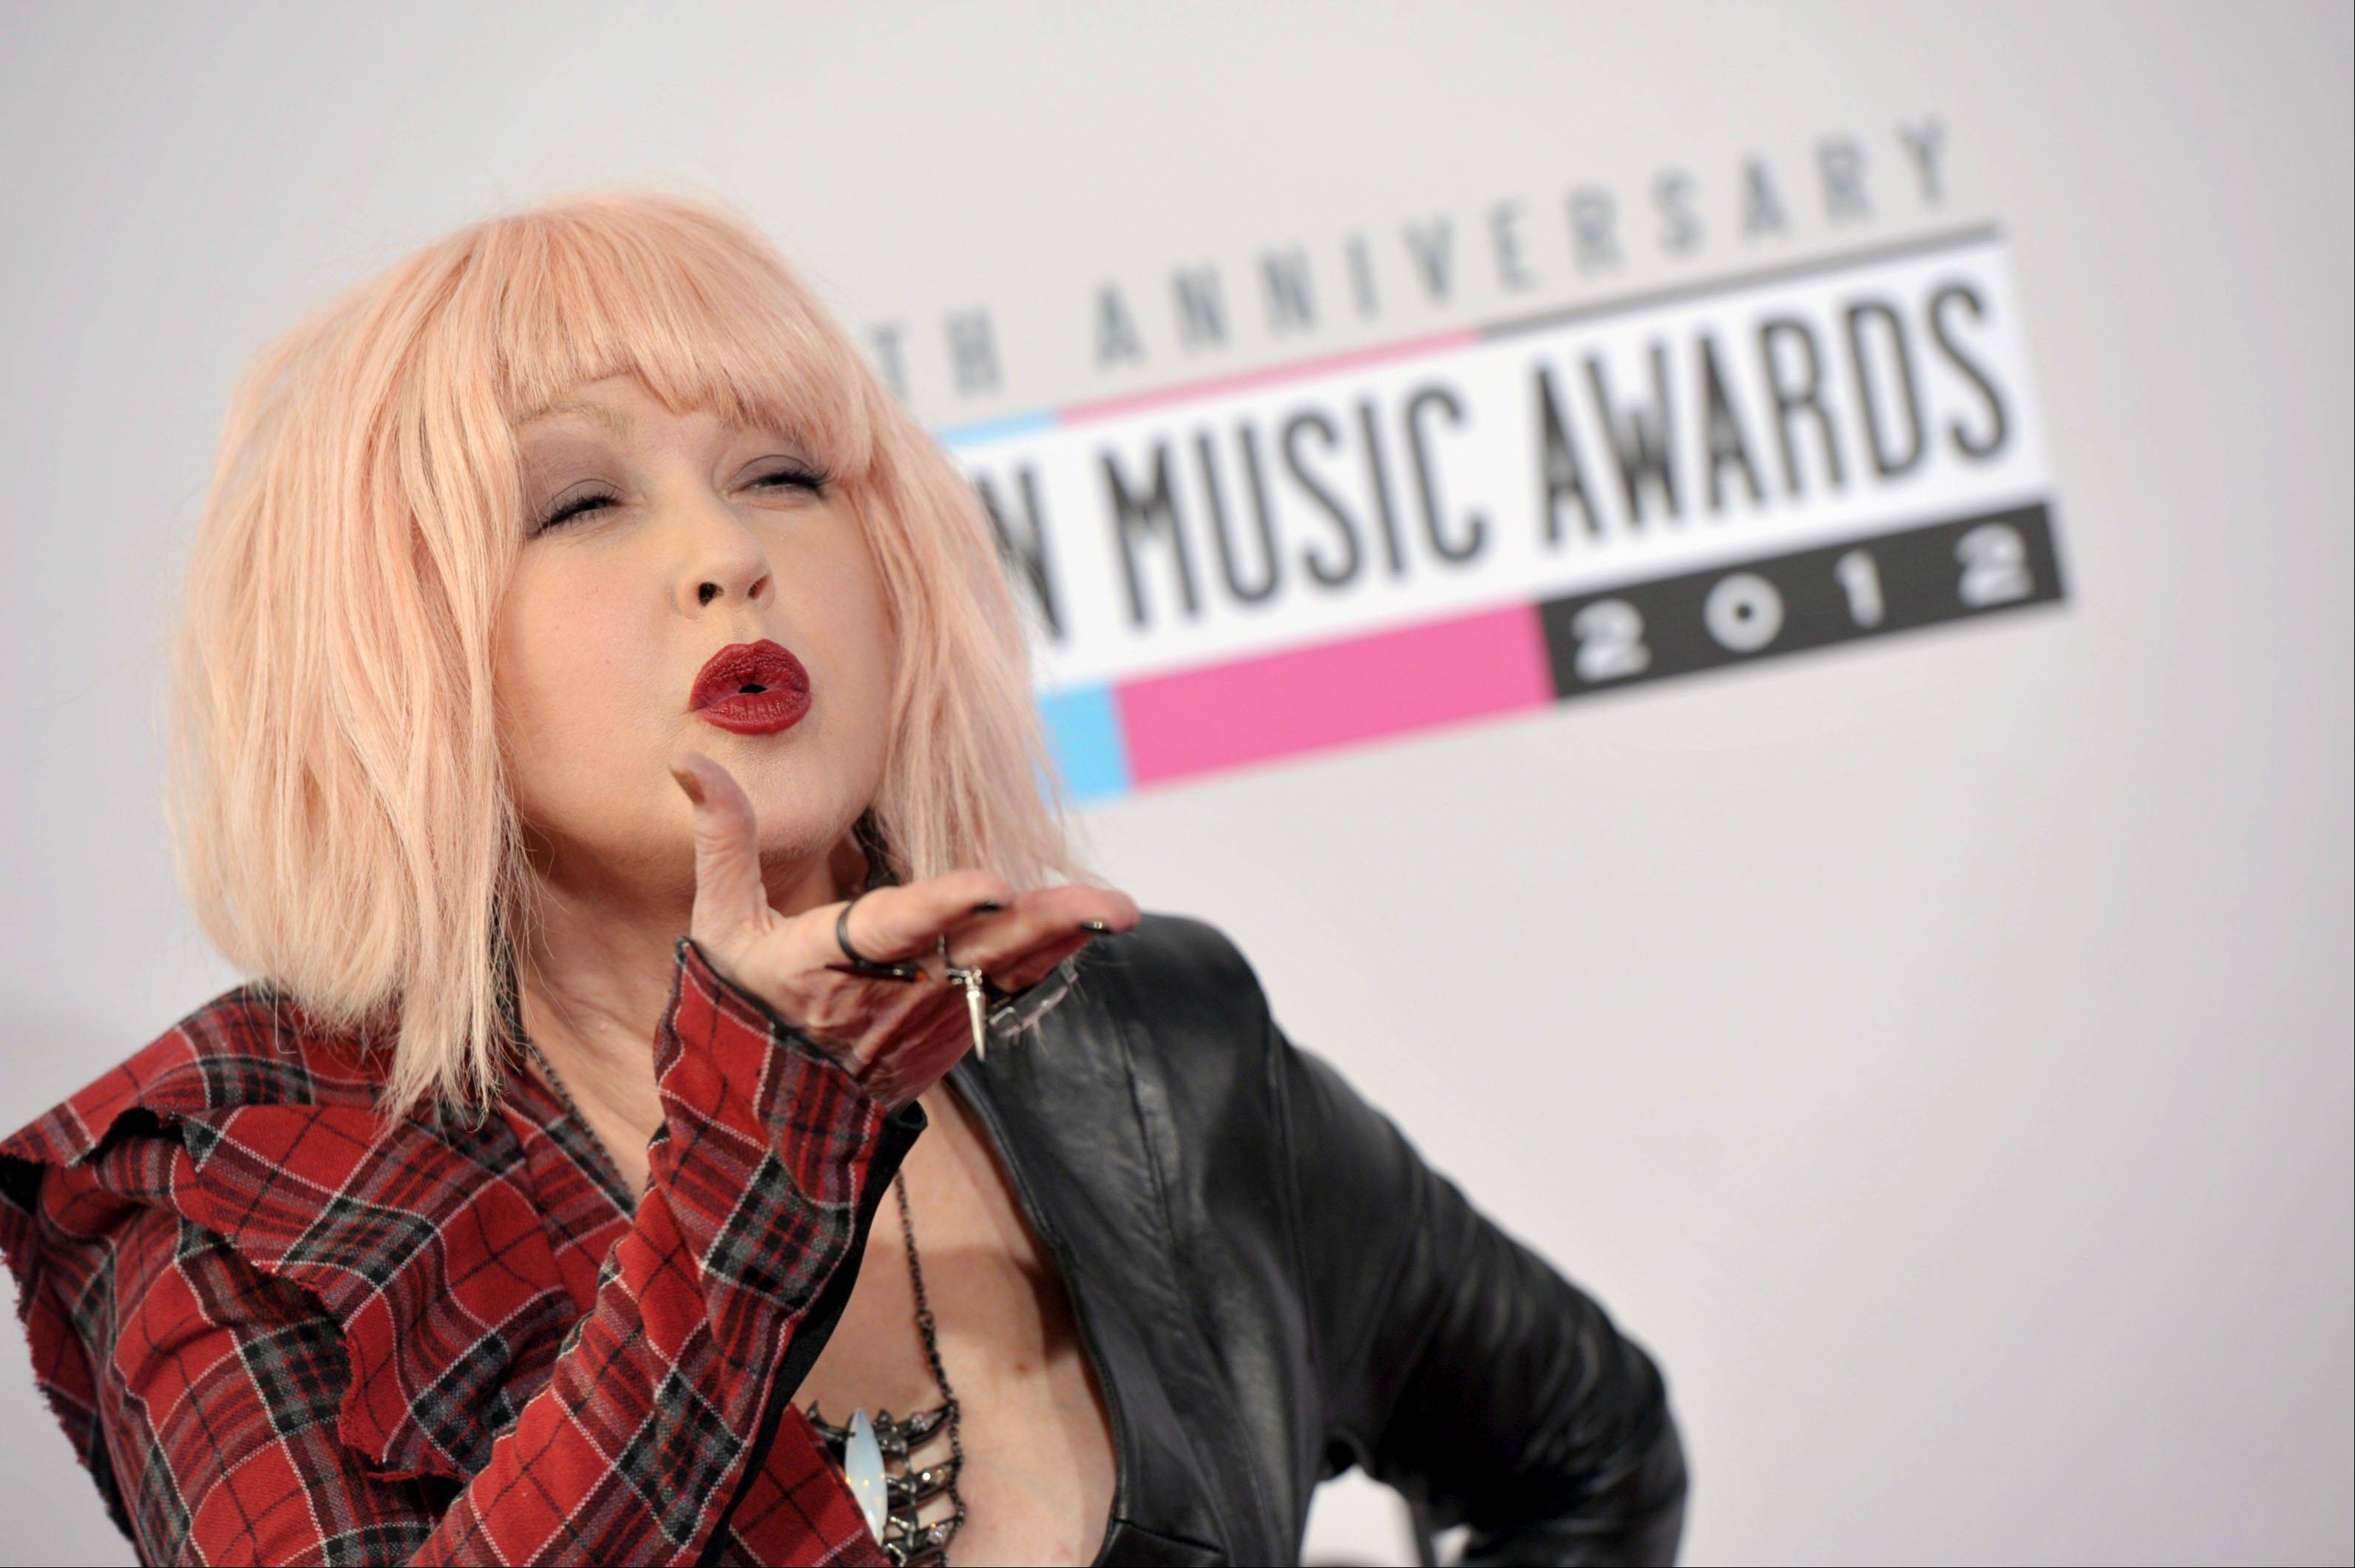 Cyndi Lauper shows fans some love while walking the press line before the 40th Anniversary American Music Awards on Sunday, Nov. 18, 2012, in Los Angeles.